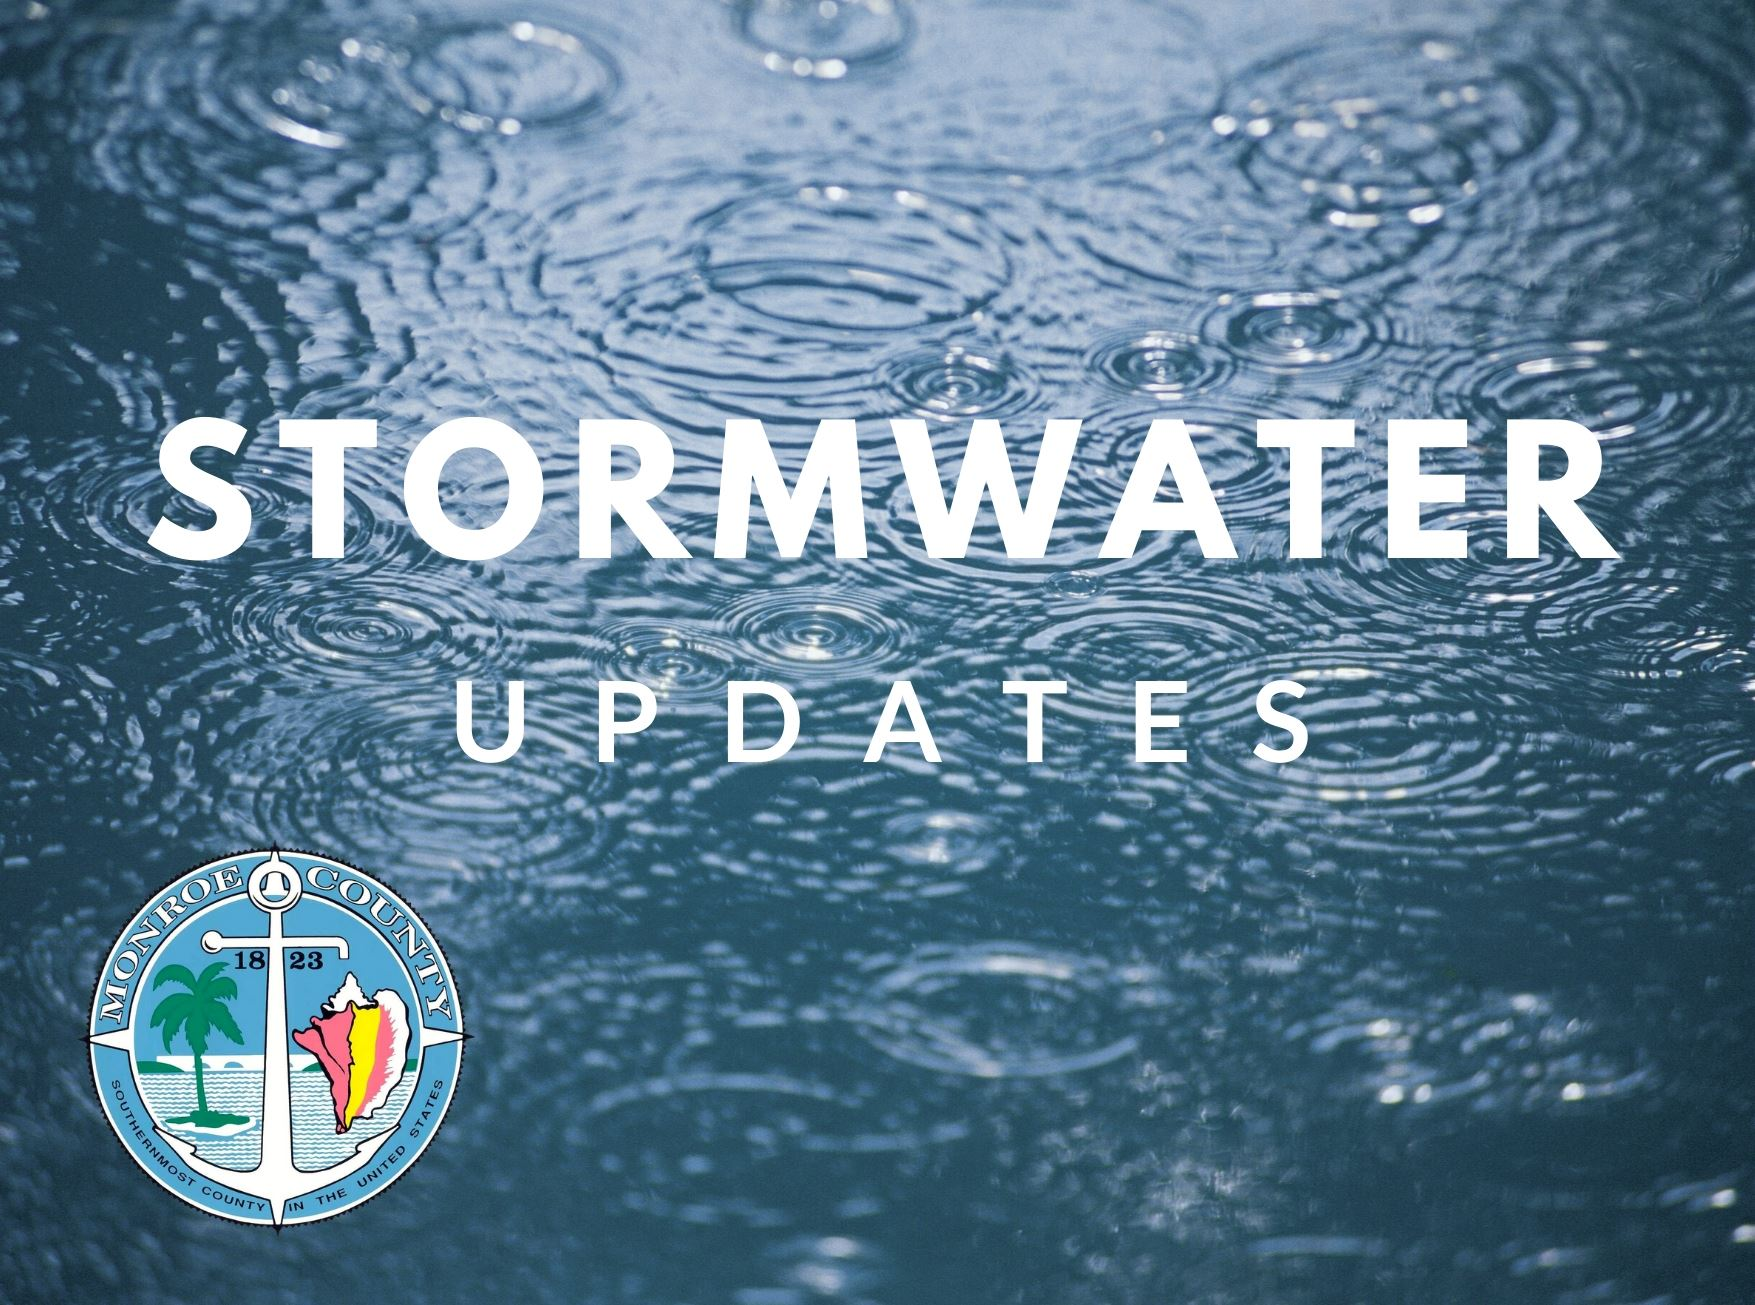 Stormwater Updates Graphic with rain on ground